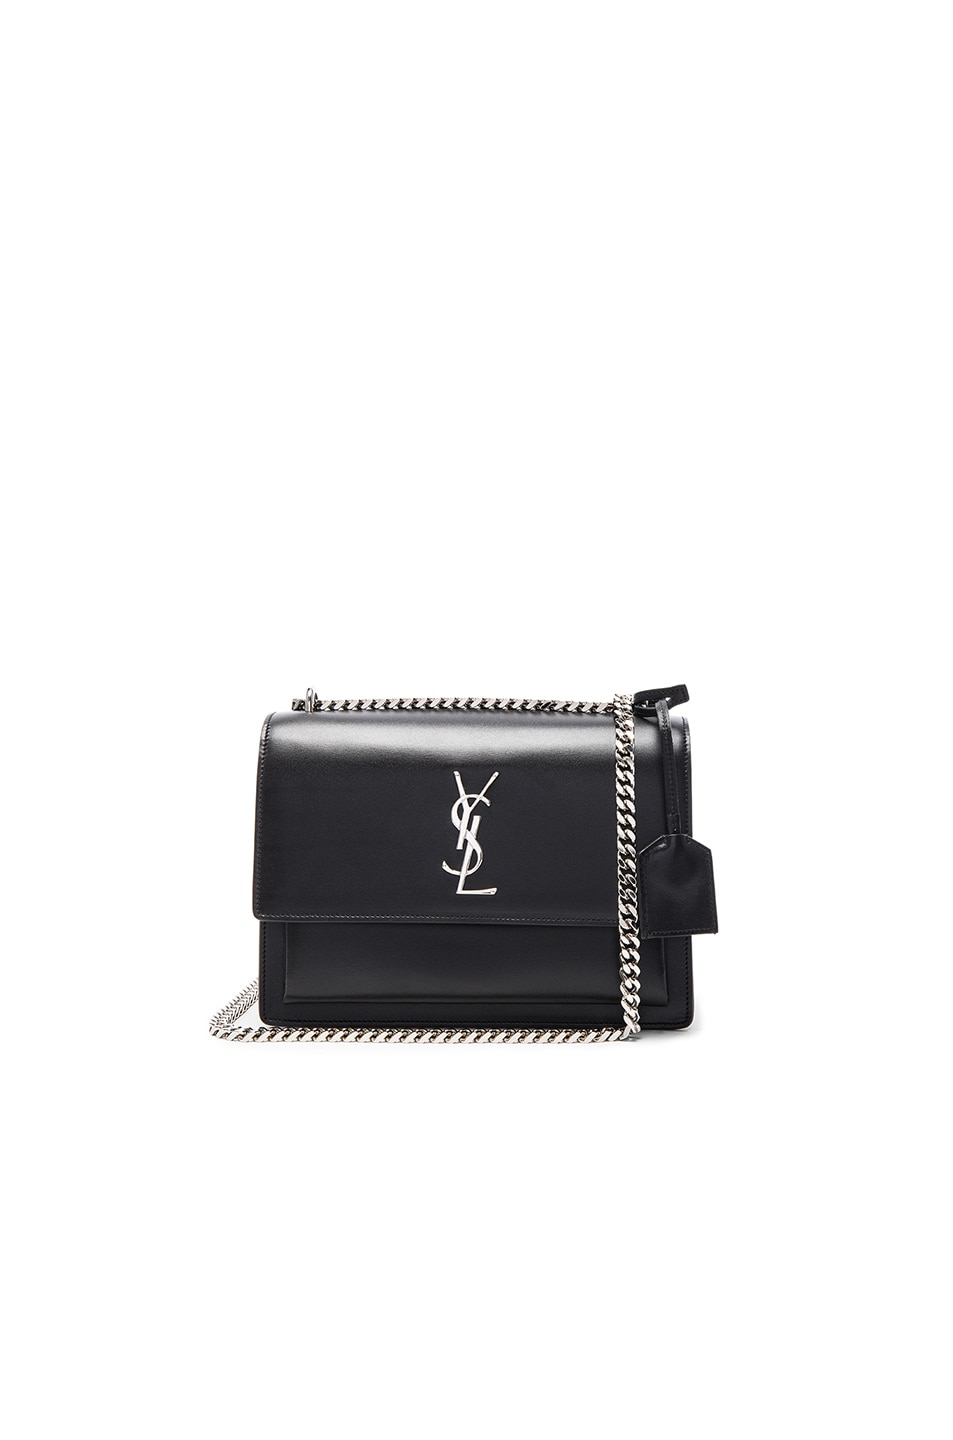 Image 1 of Saint Laurent Medium Monogramme Sunset Chain Bag in Black